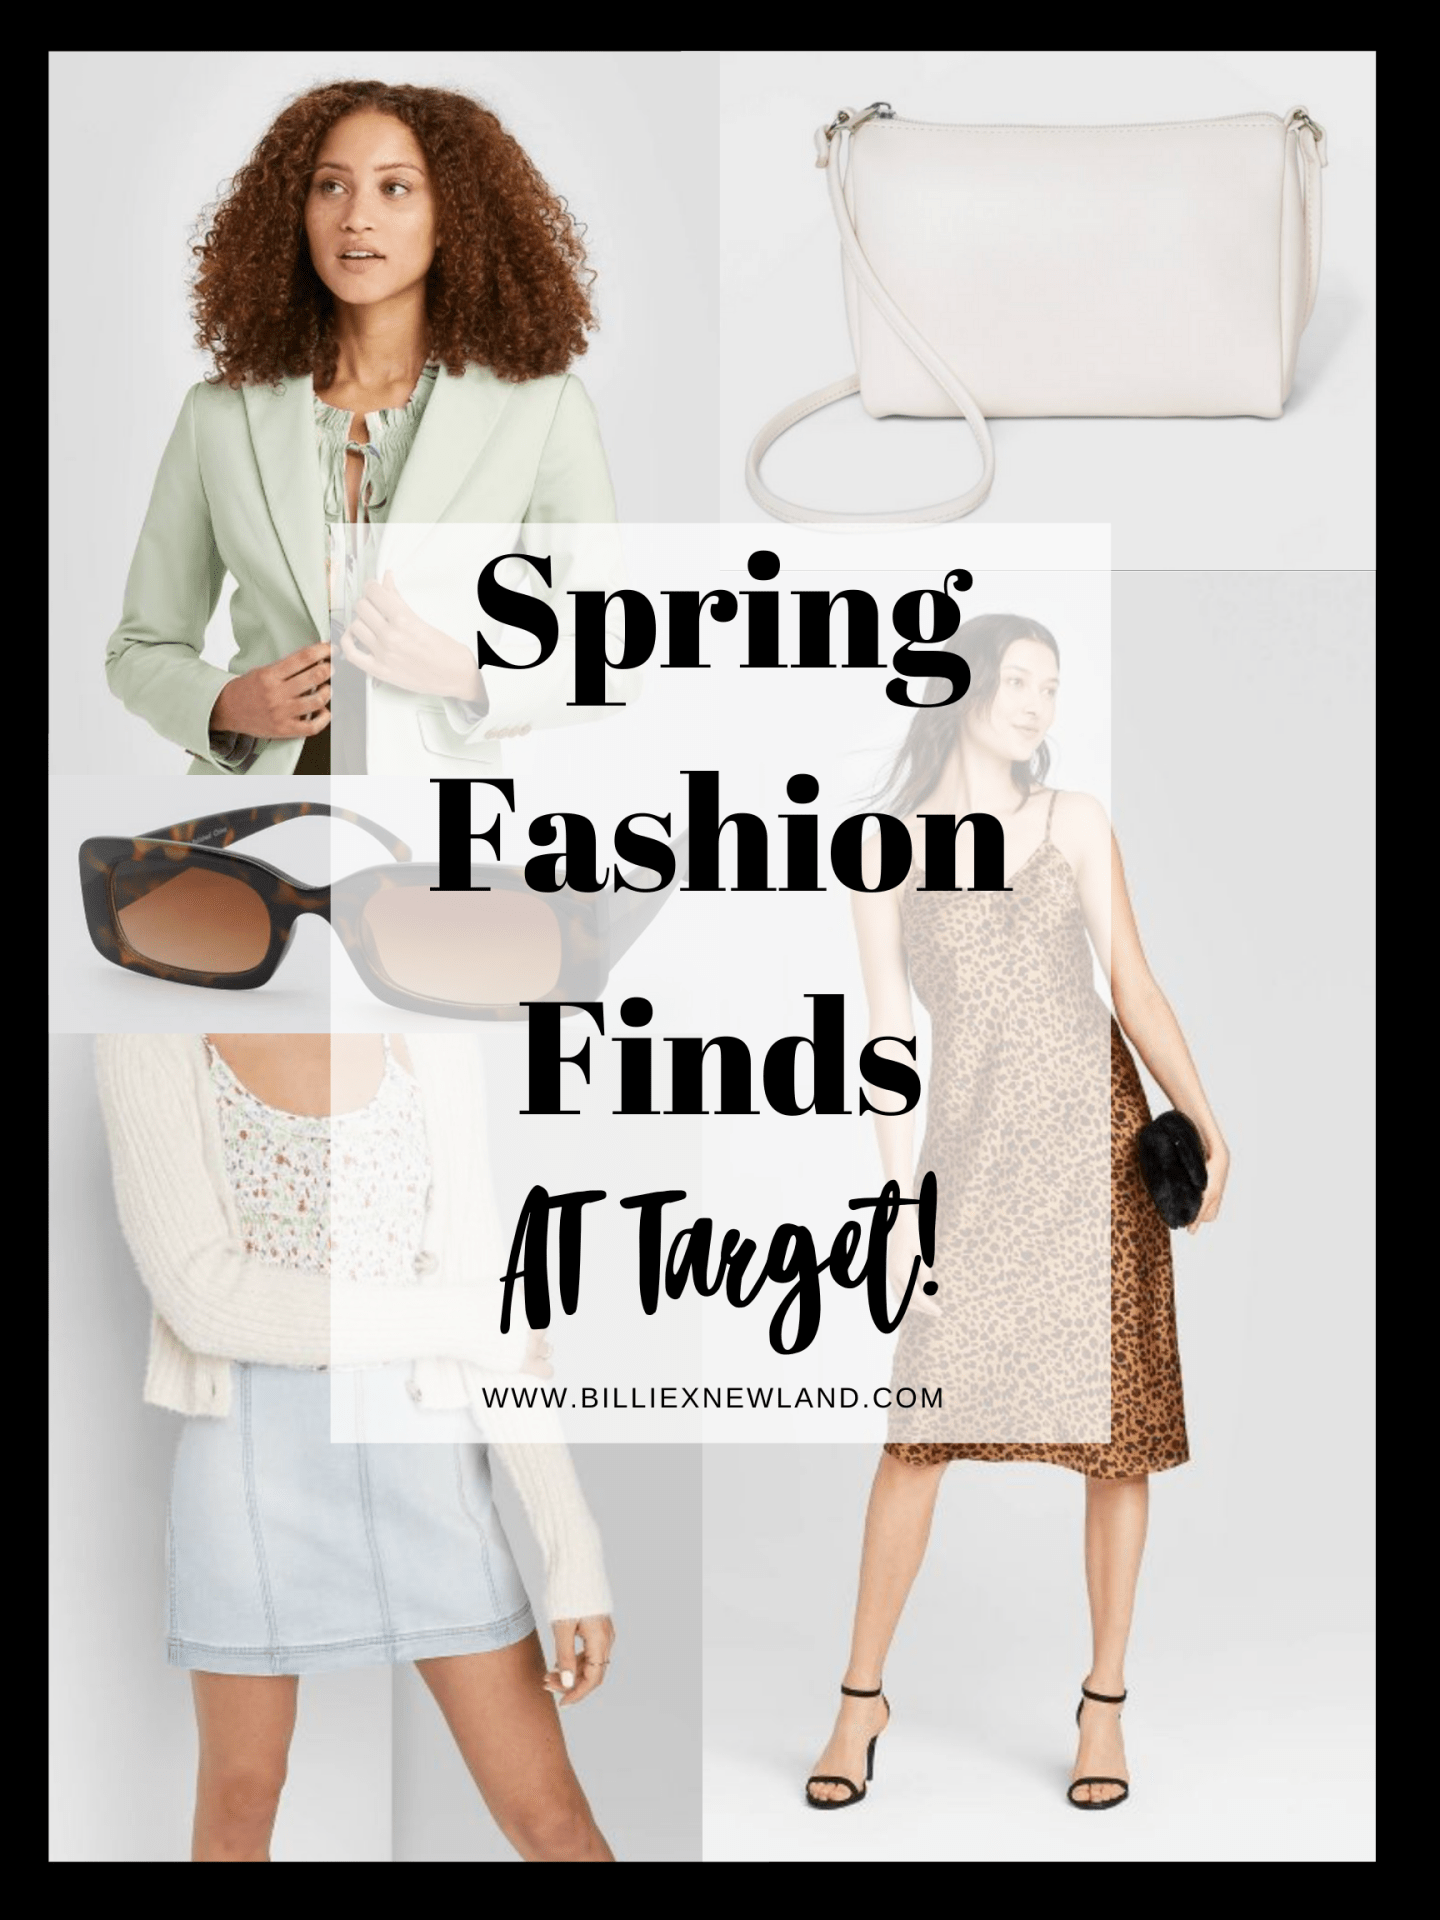 Target Fashion Finds!